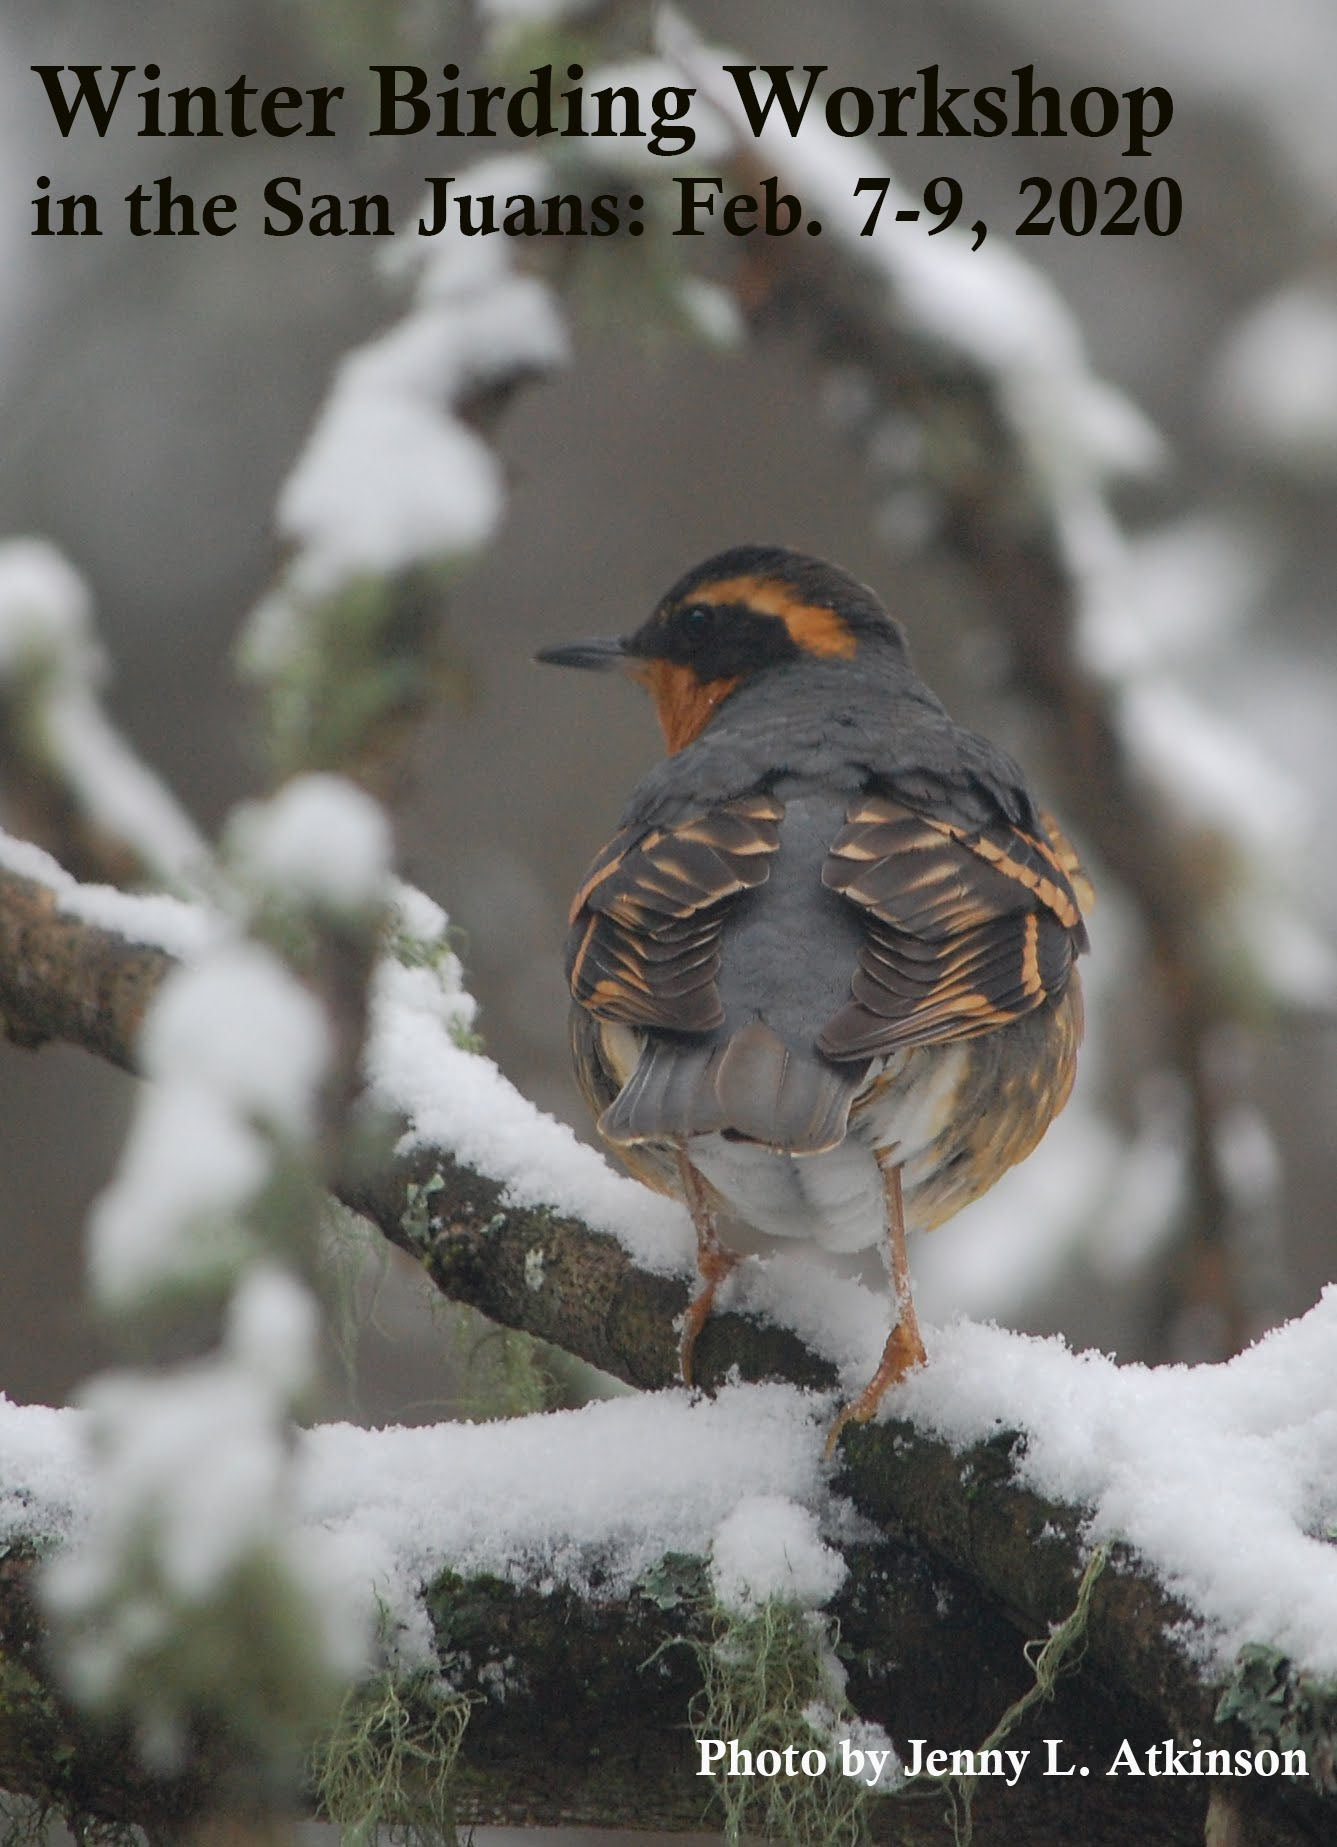 Winter Birding Workshop in the San Juans: February 7-9, 2020